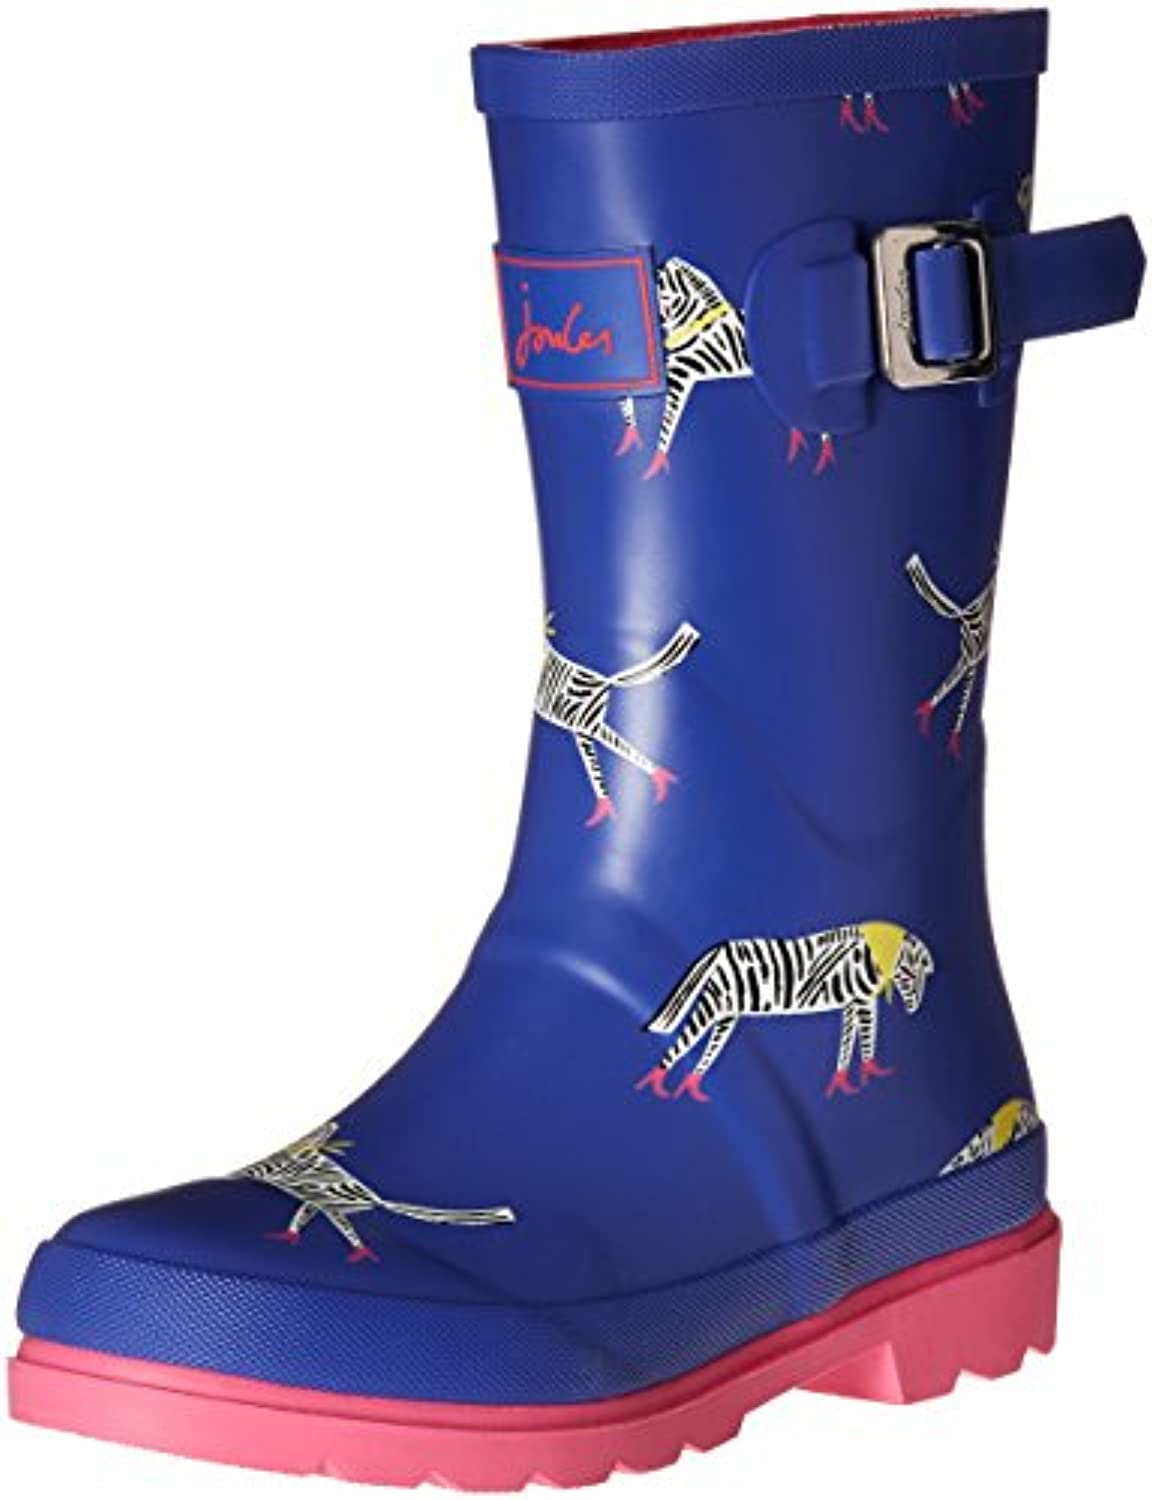 Joules Girls' V_Jnrgirlswly Rain Boots, Blue (Blzigzg), 8 Child UK 25 EU